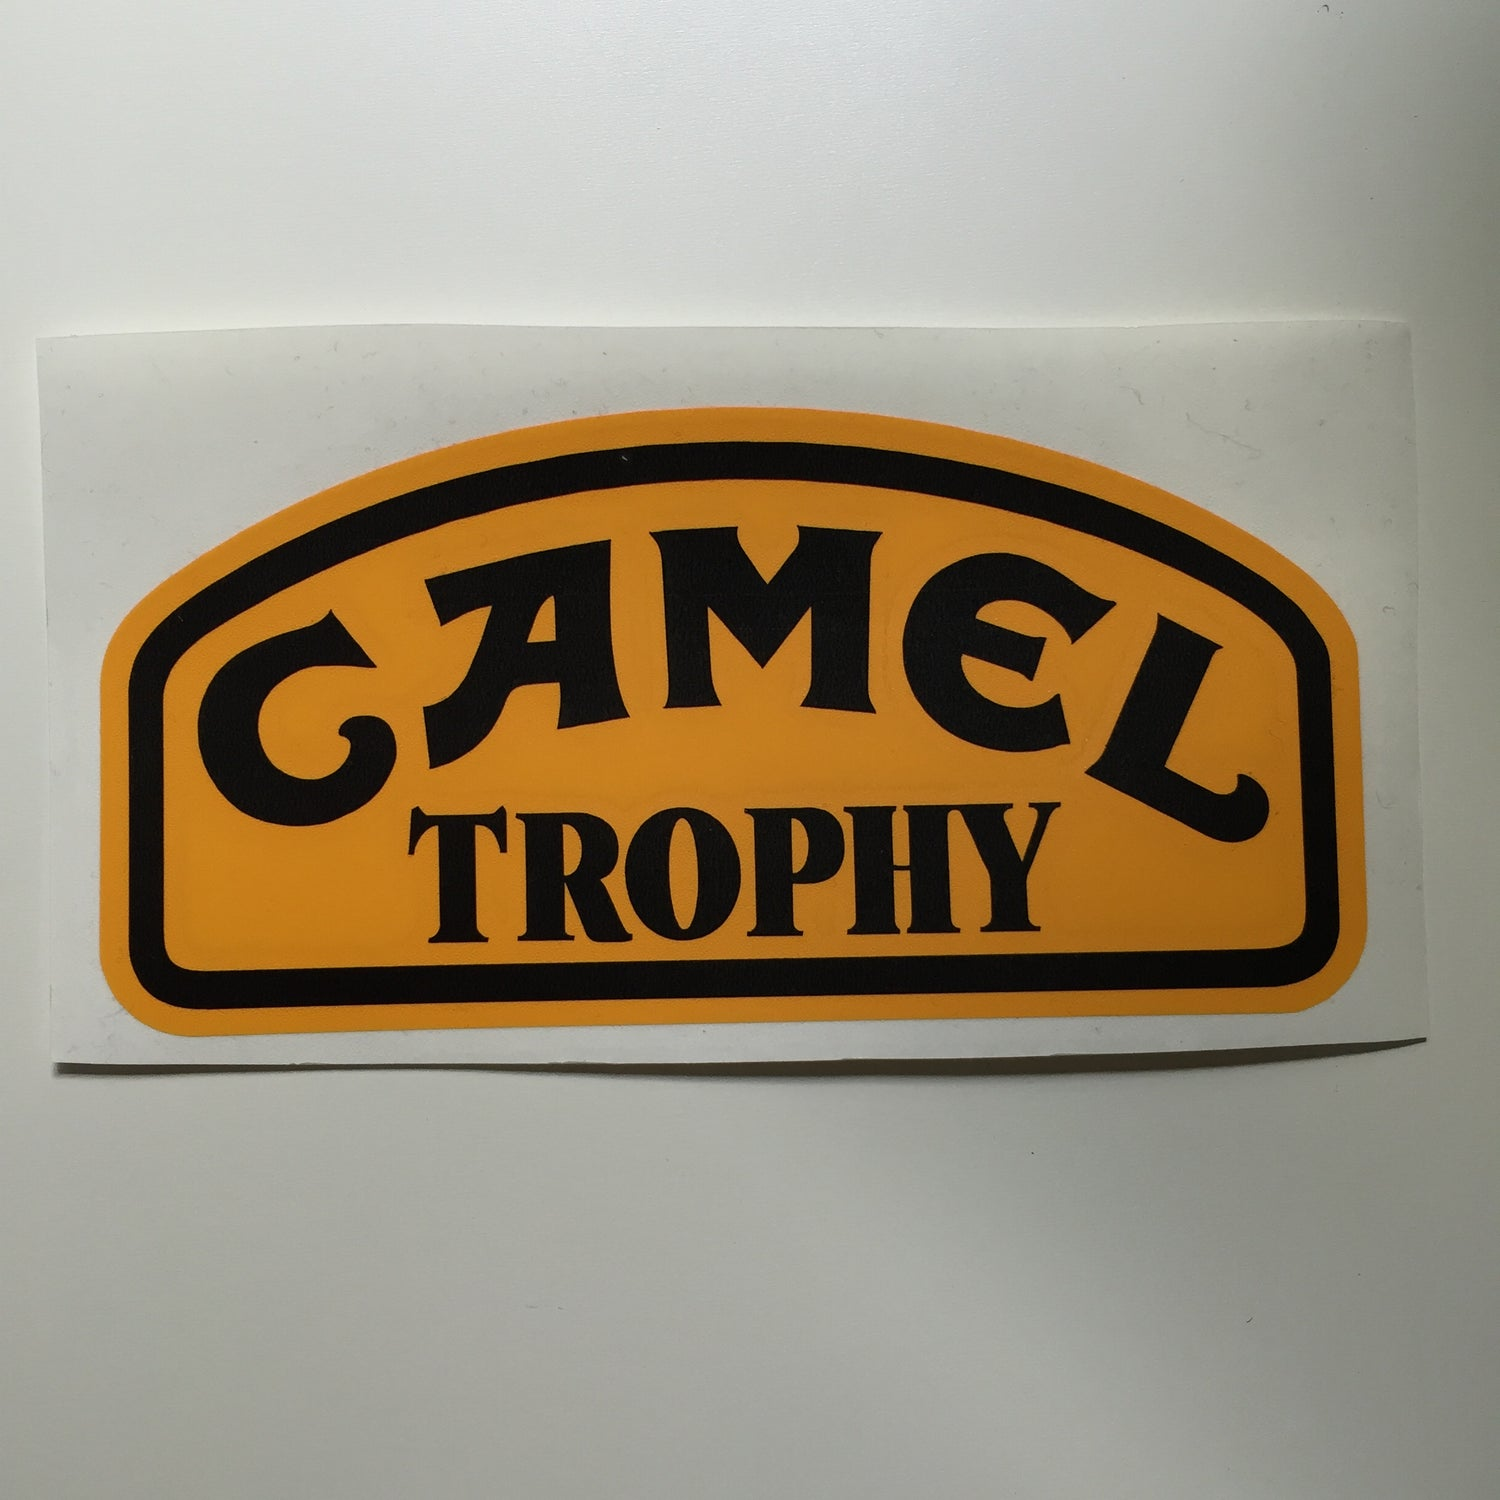 Image of CAMEL Trophey Decal